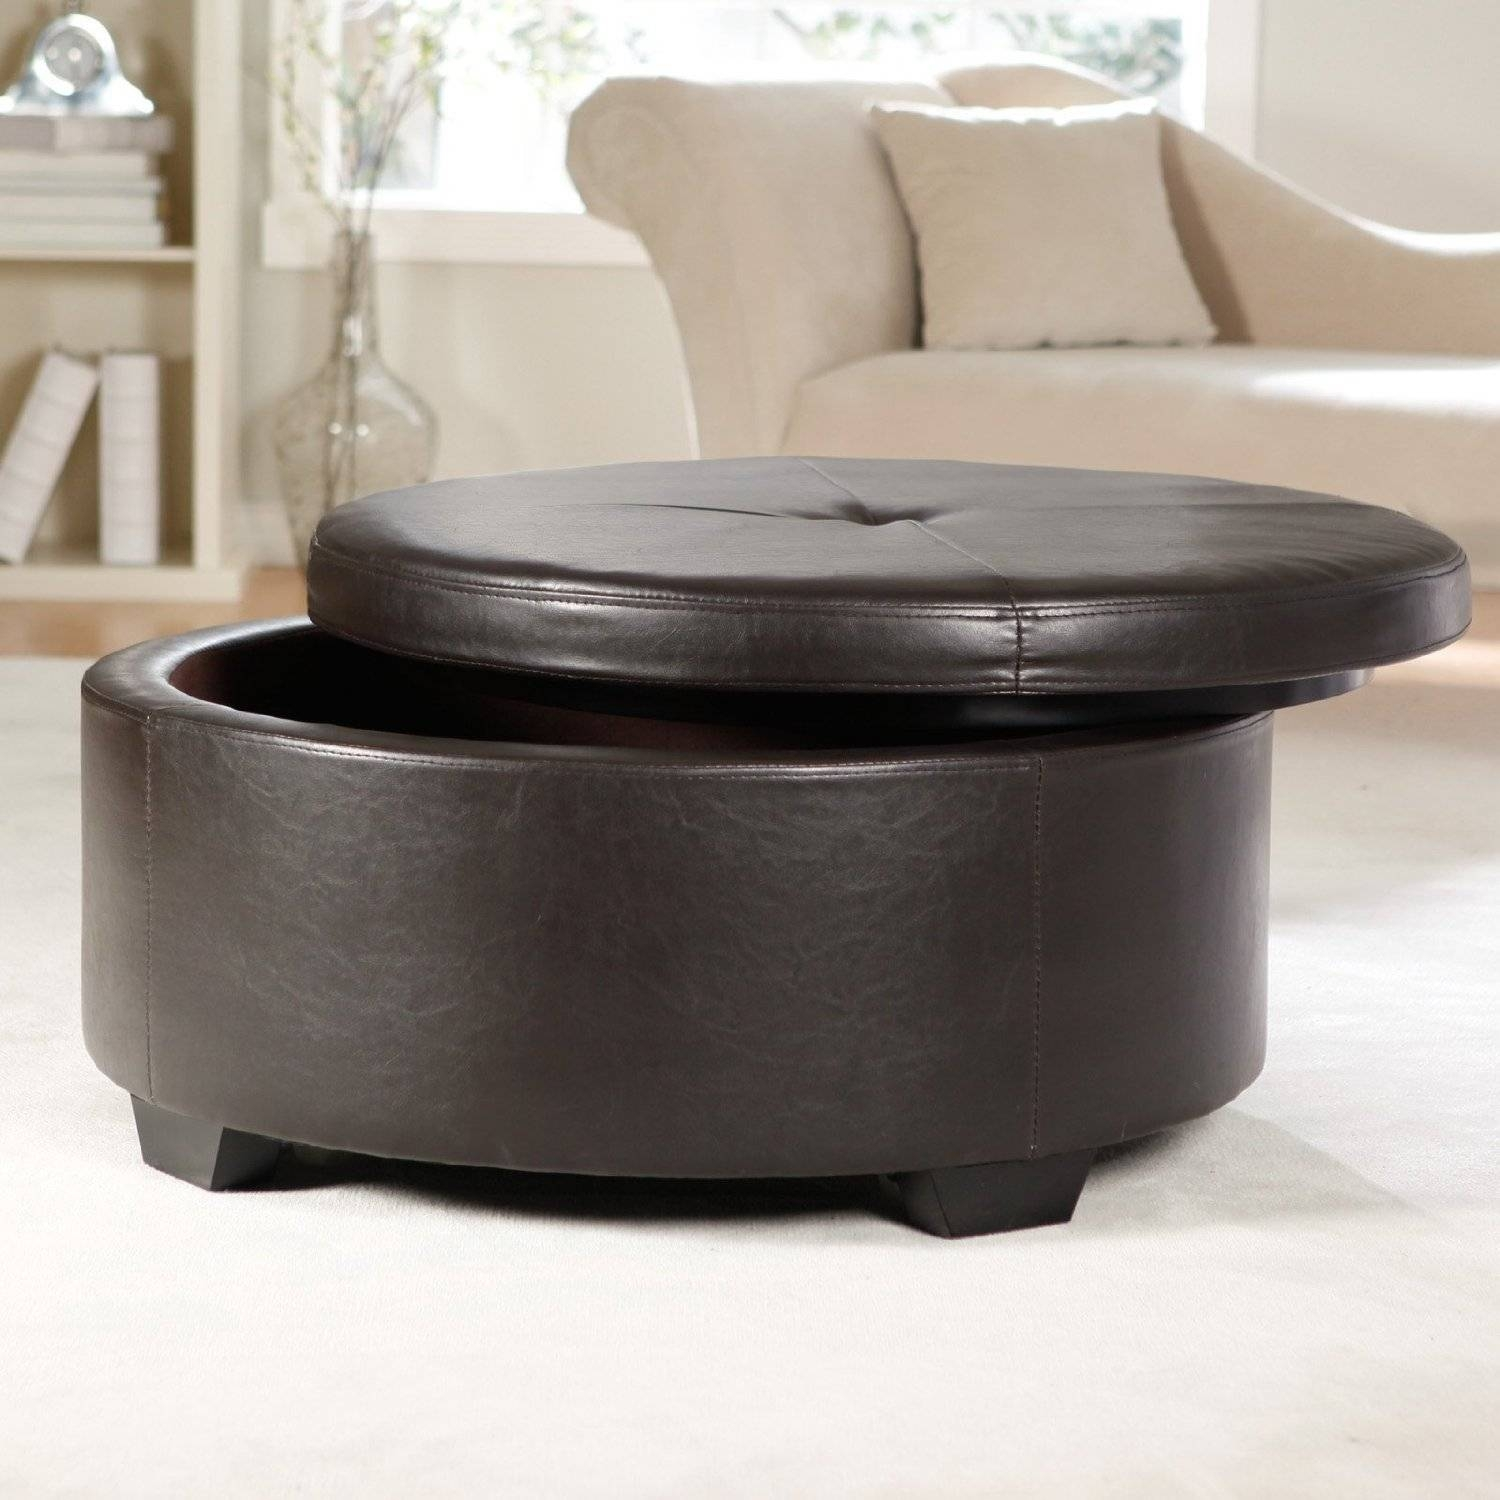 Coffee Table: Remarkable Round Leather Coffee Table Ideas Leather with Dark Wood Round Coffee Tables (Image 11 of 30)